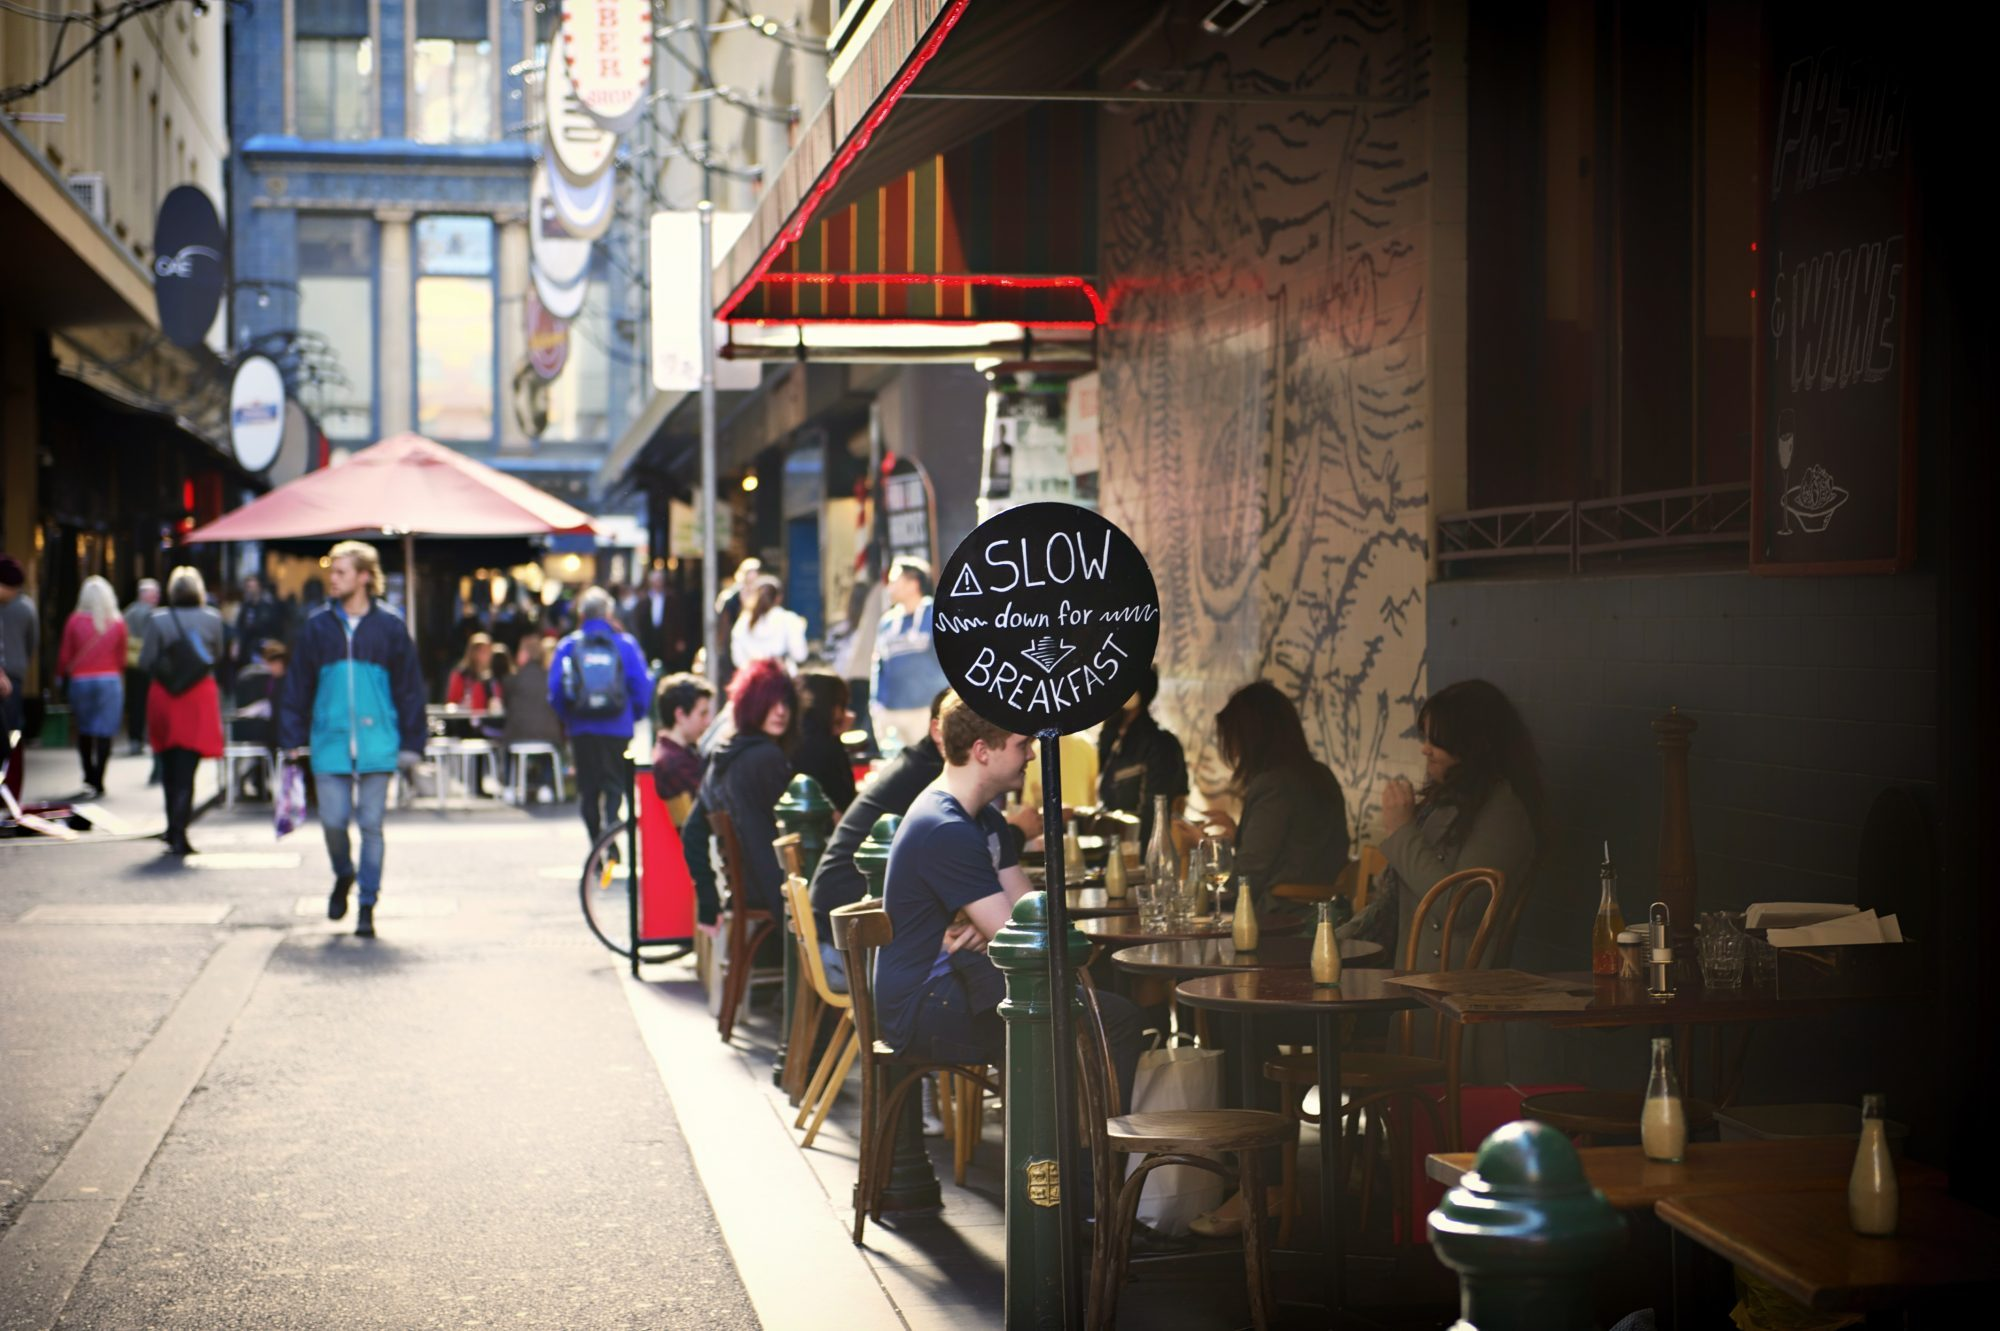 People eating breakfast in Melbourne's iconic inner-city Degraves Street.